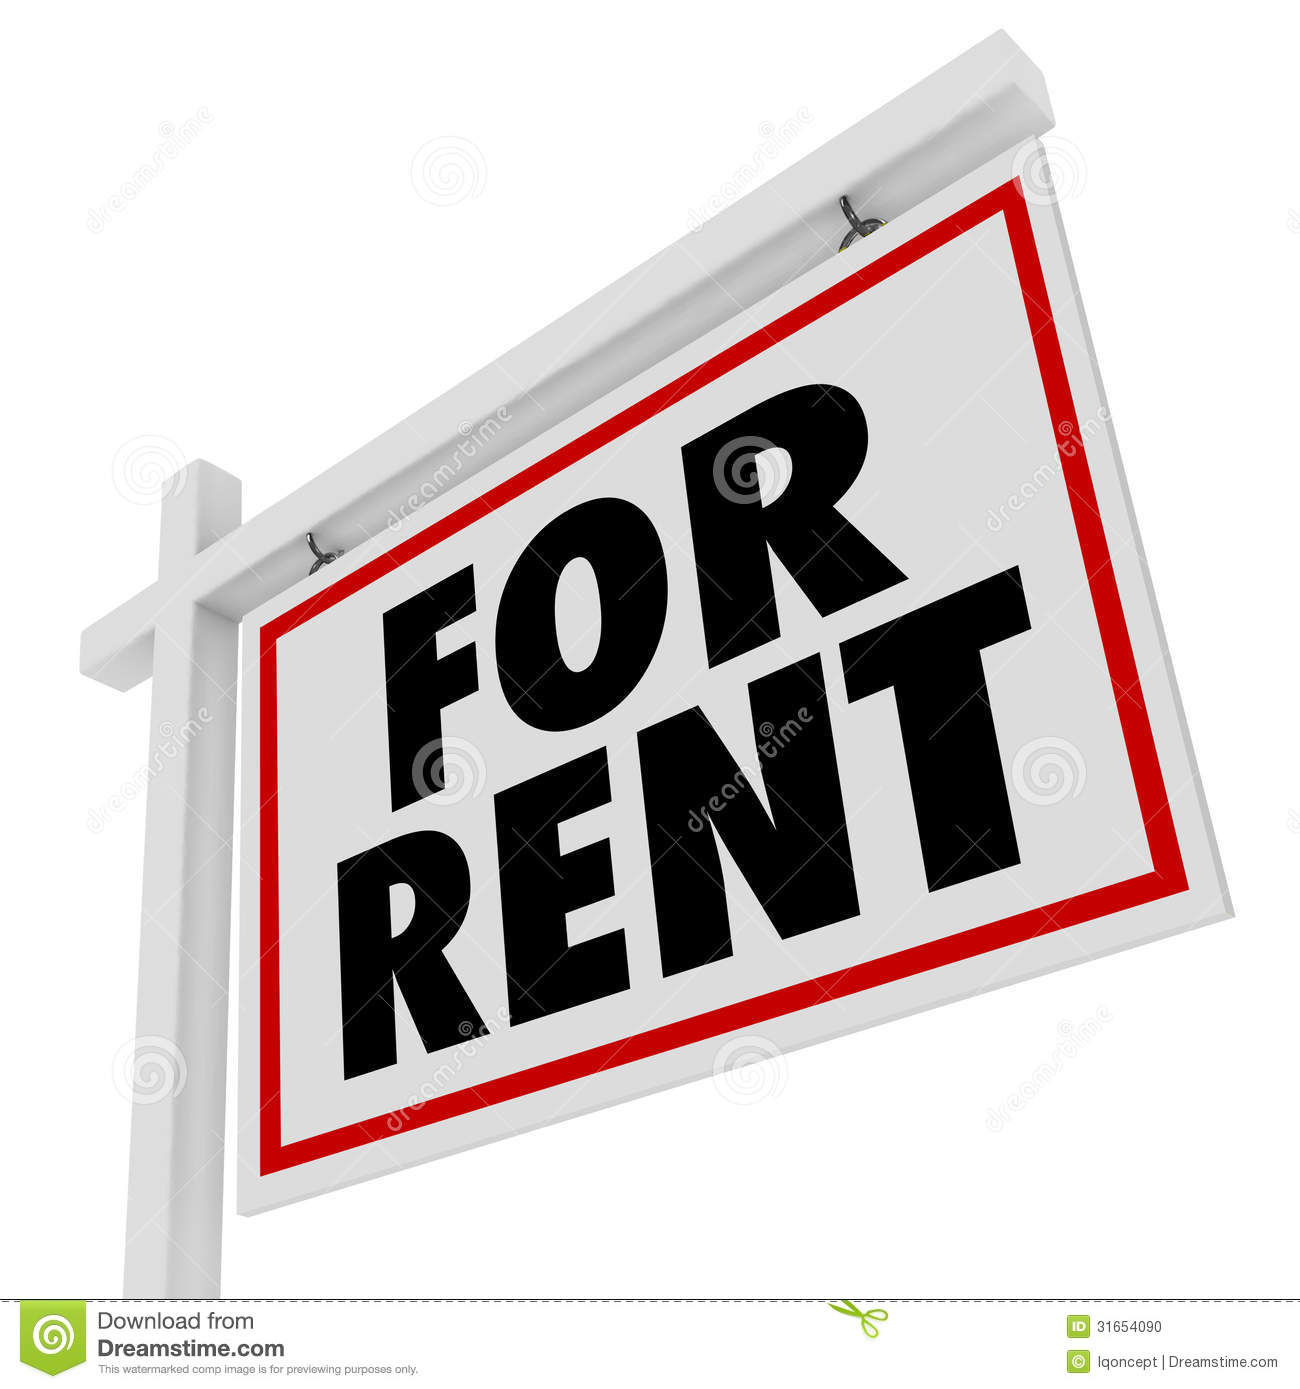 Apartment For Rent Sign: For Rent Real Estate Home Rental House Sign Stock Photo